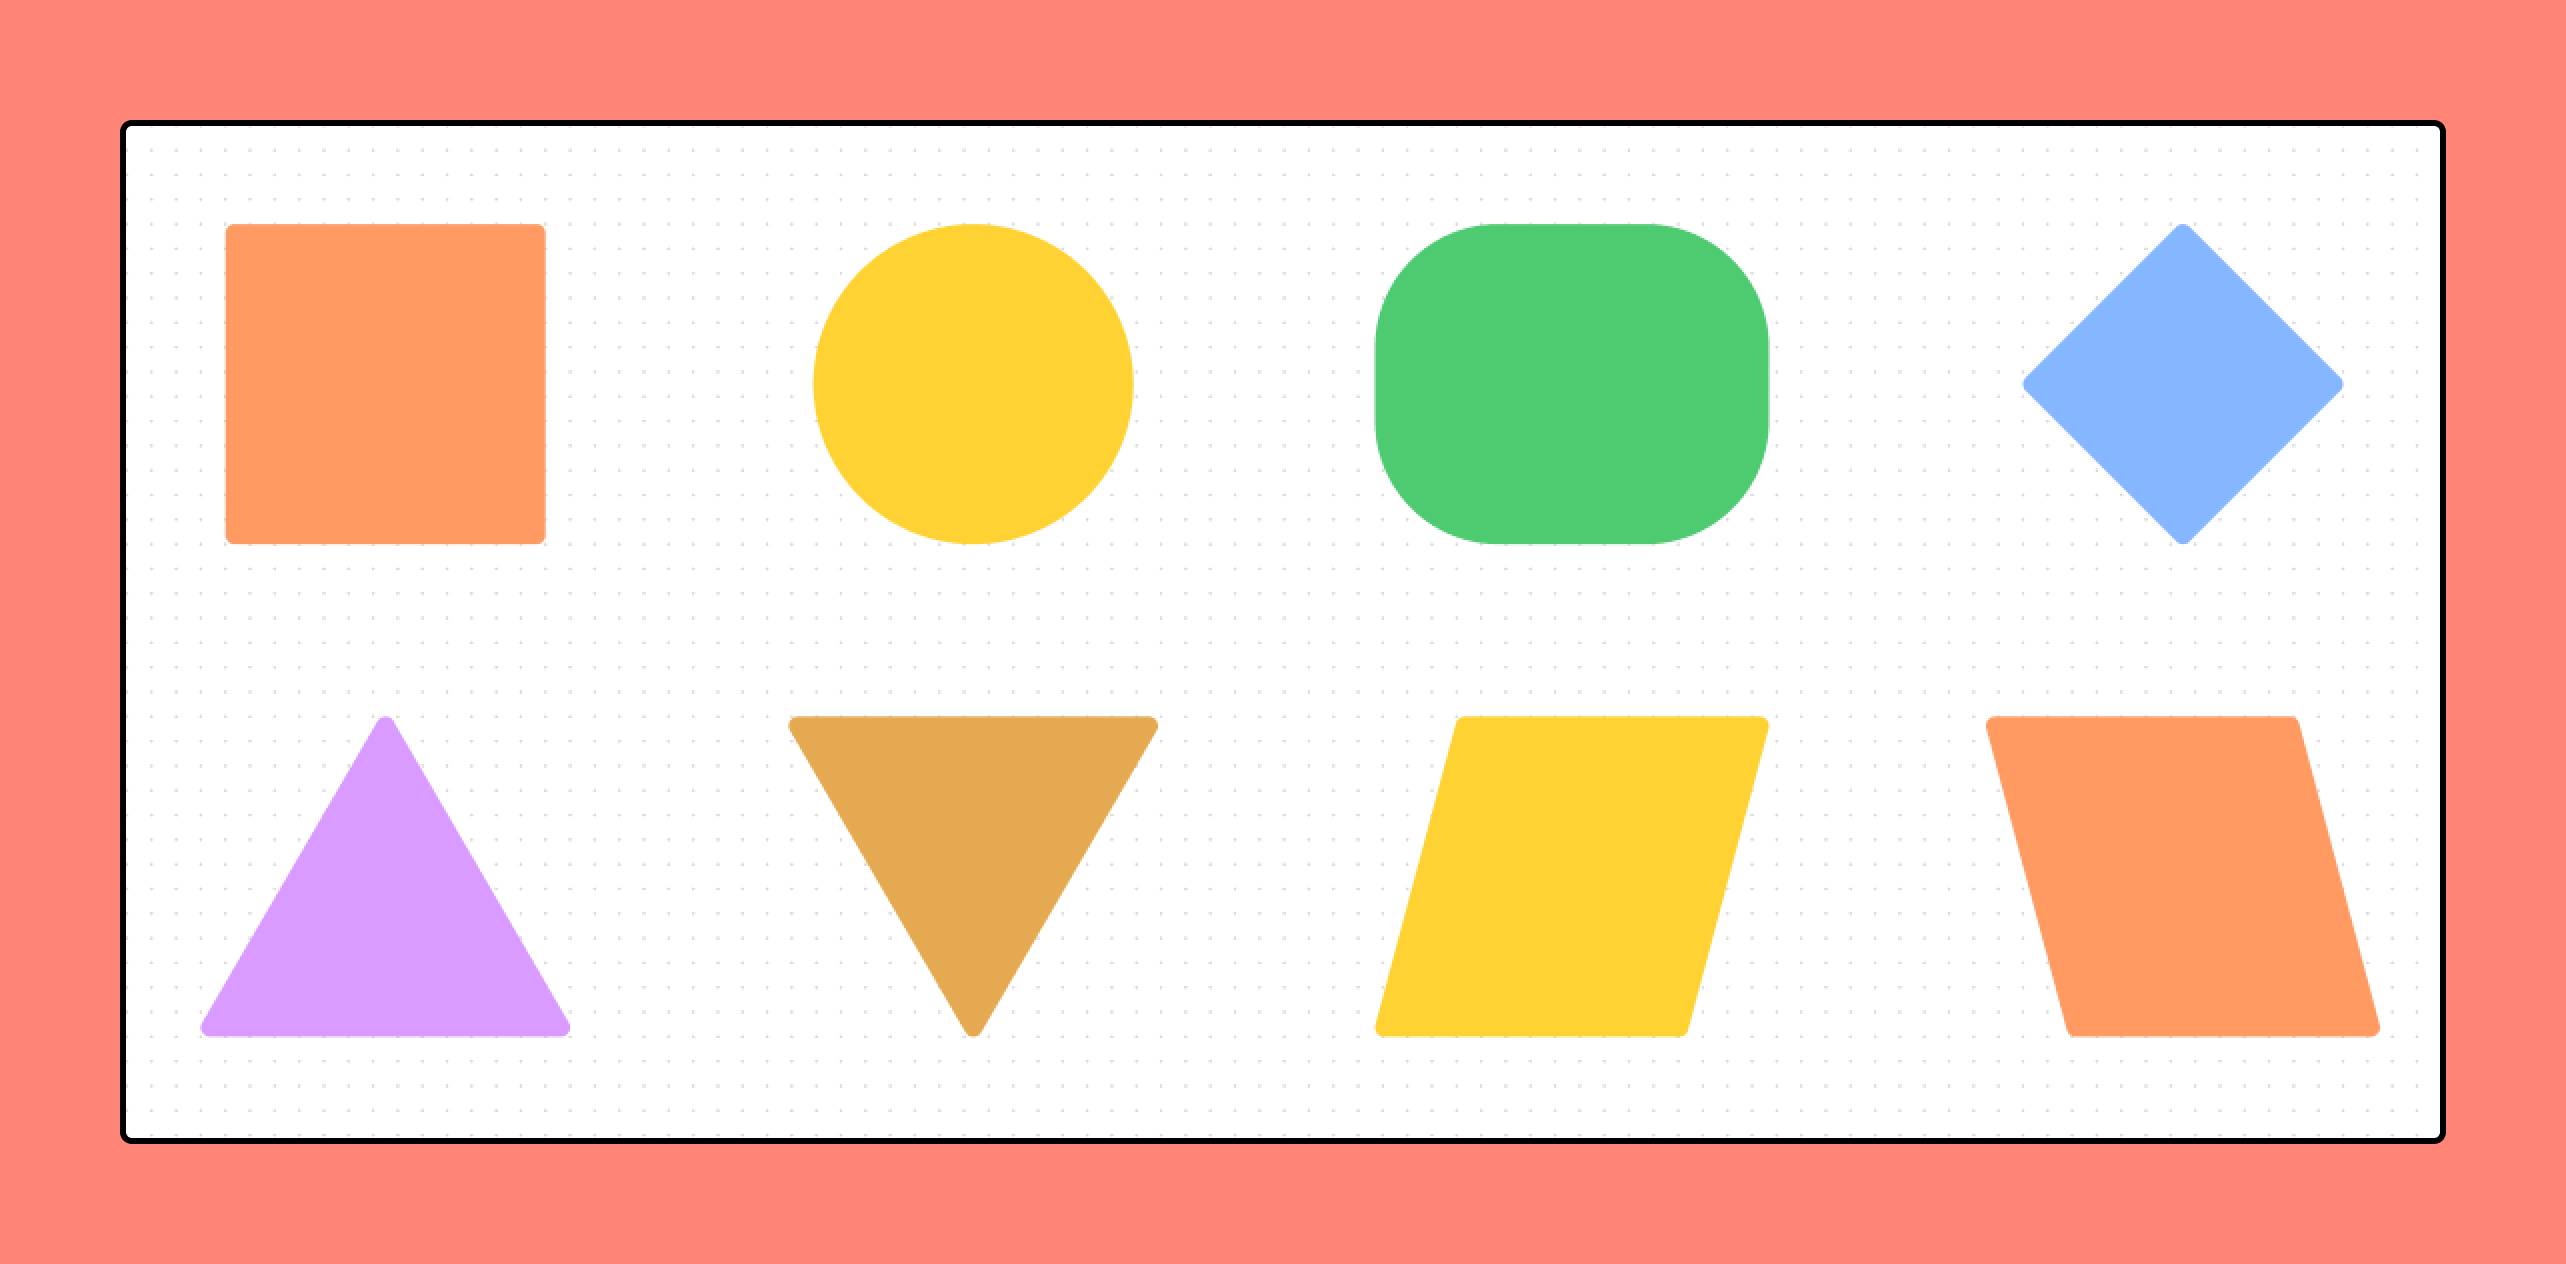 Available shapes in FigJam